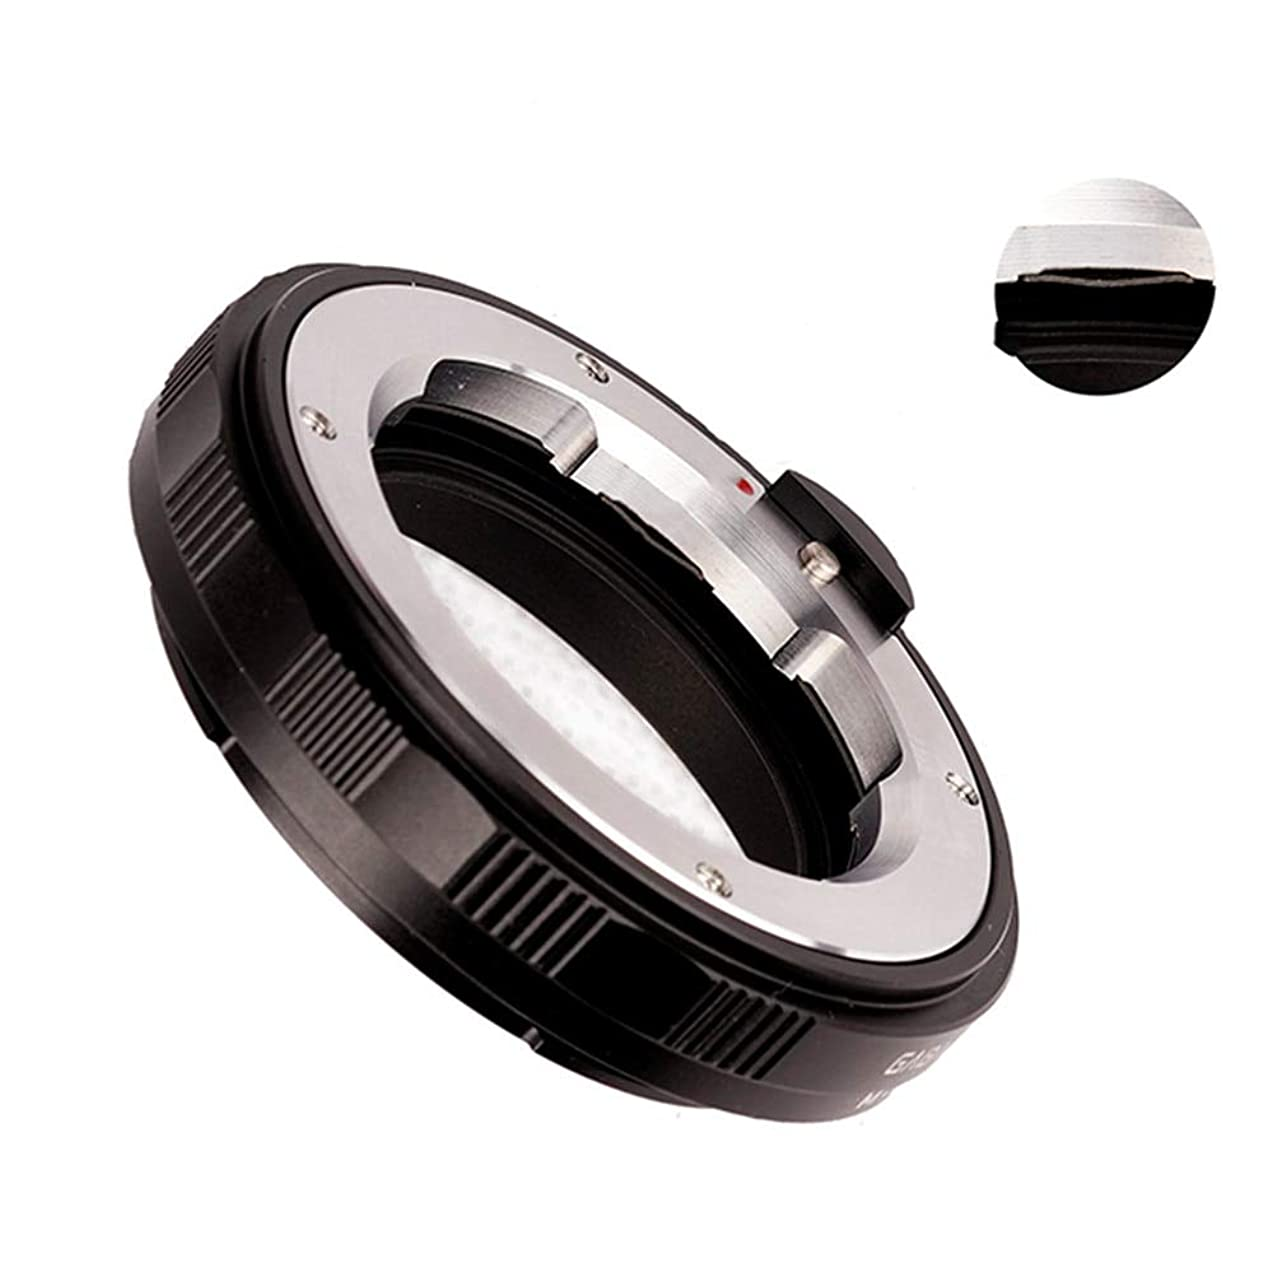 Cailiaoxindong for Leica LM ZEISS M VM Mount Lens Adapter for Nikon Z Mount Z6 Z7 Camera Lenses Adapter Accessories